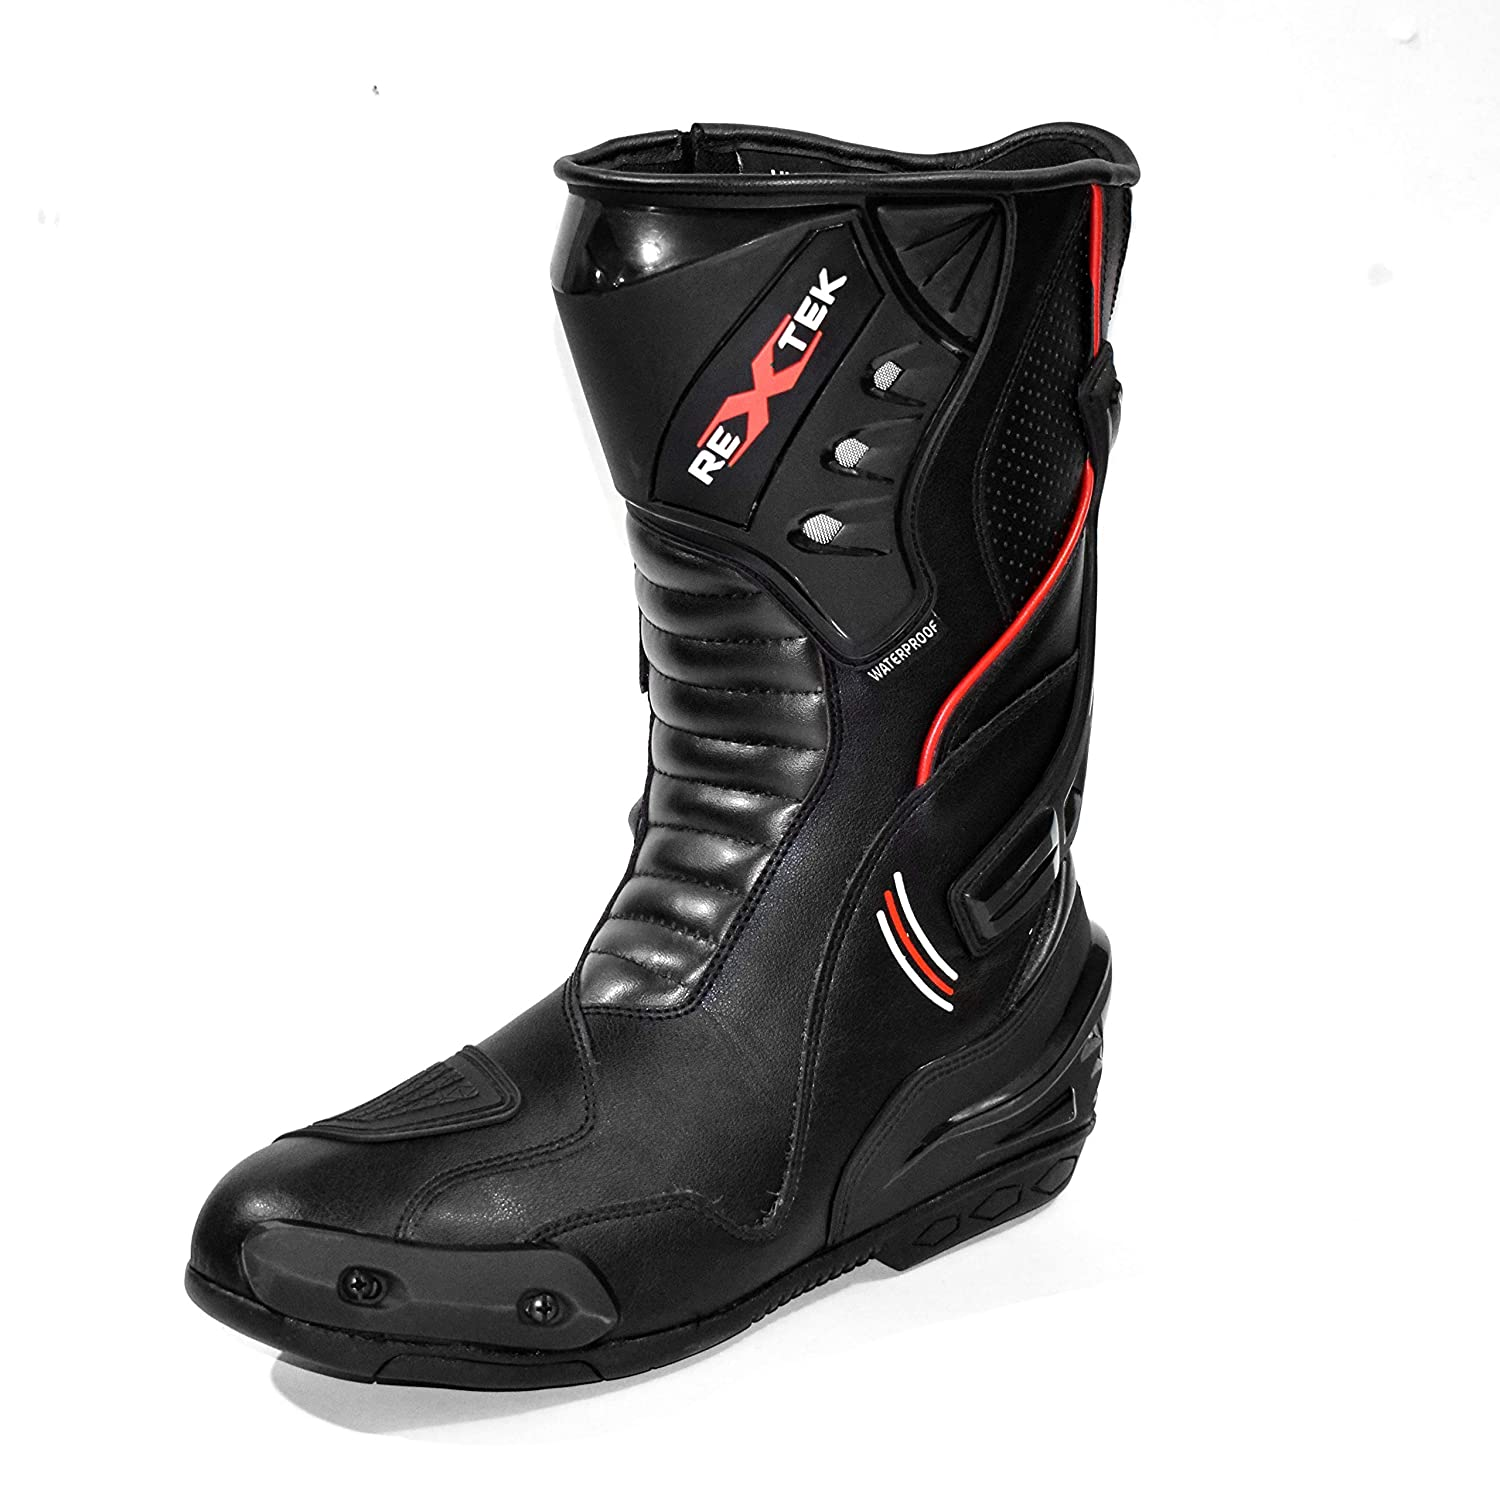 Mens Waterproof Motorbike Motorcycle Armoured Leather Boot Touring Racing Sports Shoes for All Weather with Anti Skid Rubber Sole PROFIRST 10017B UK 11 // EU 45 Full Black